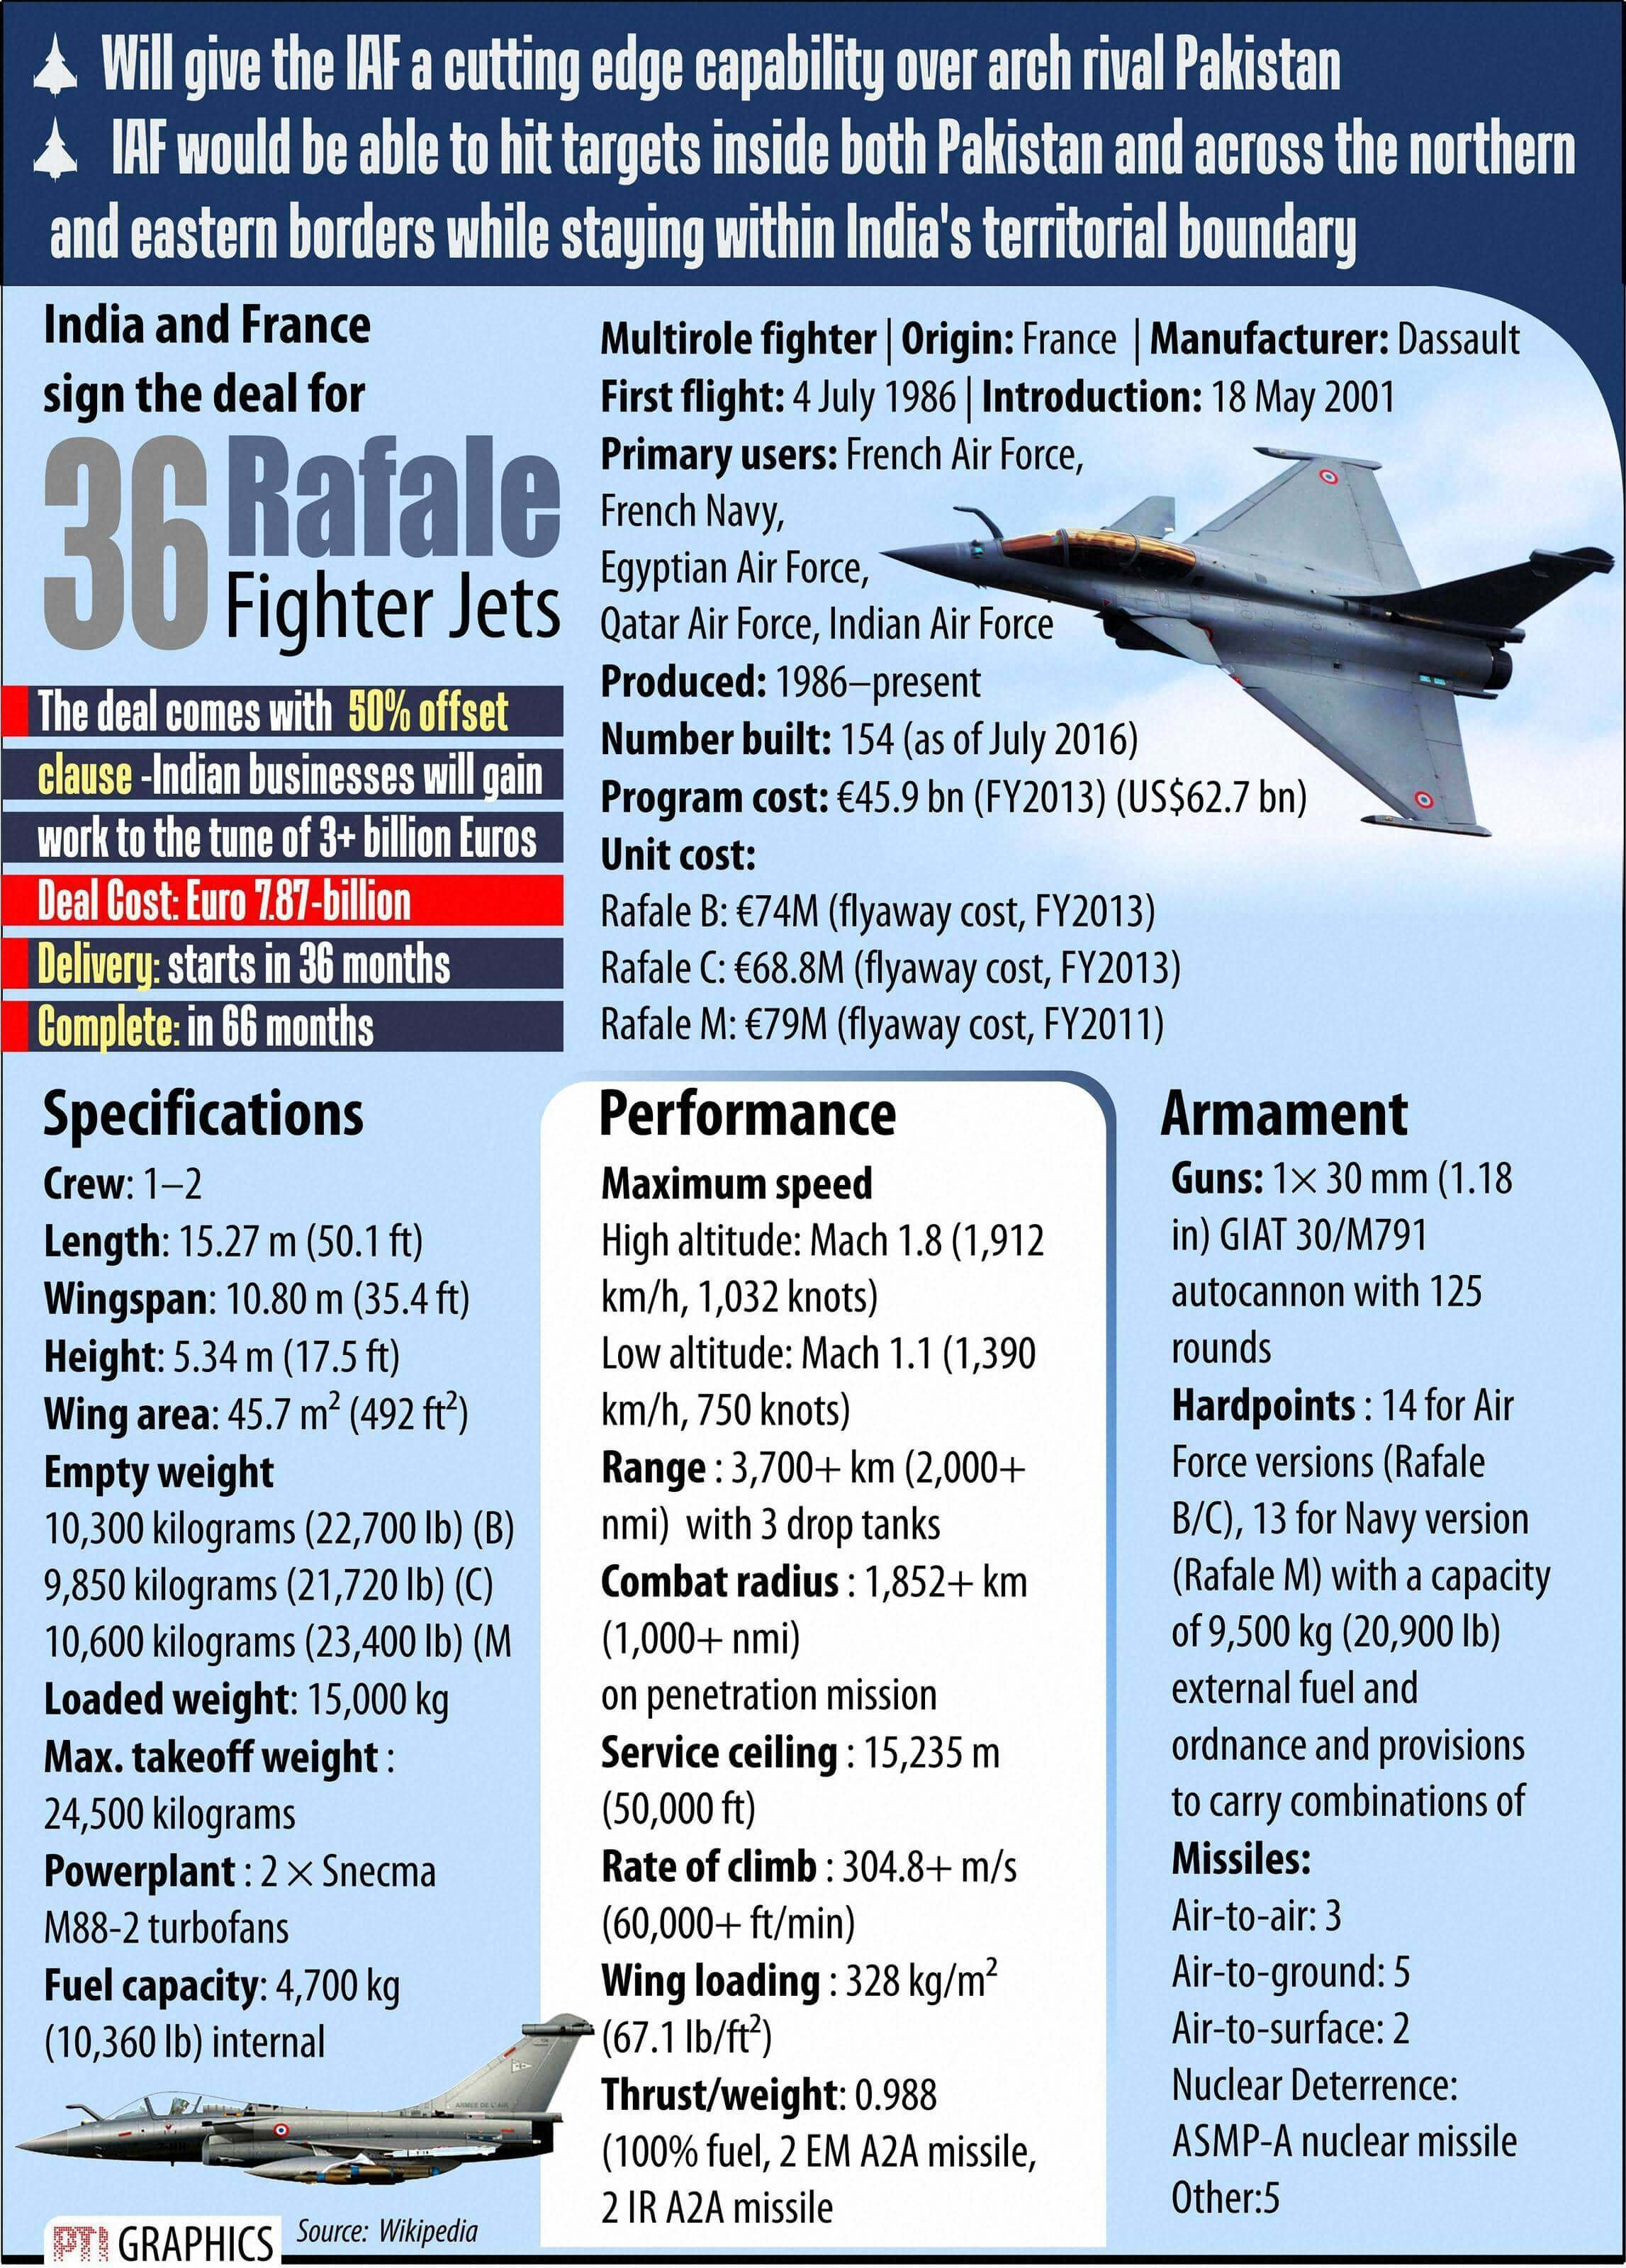 Rafale Or F-16? Comparing India & Pakistan's Top Fighter Jets